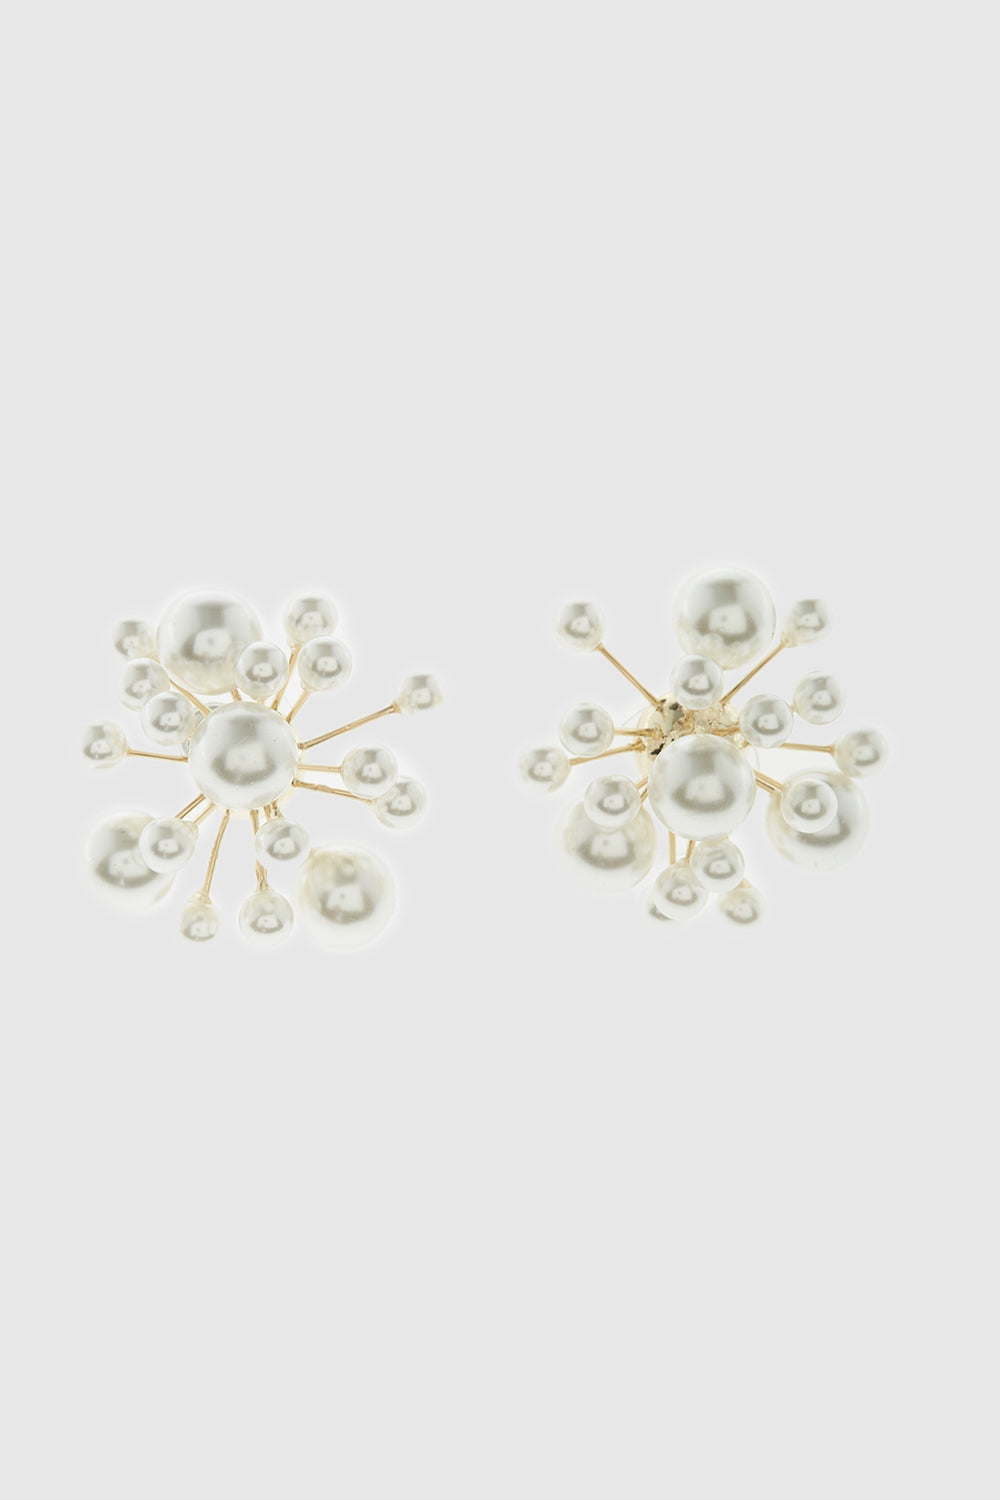 Vasella Nicolette Earrings